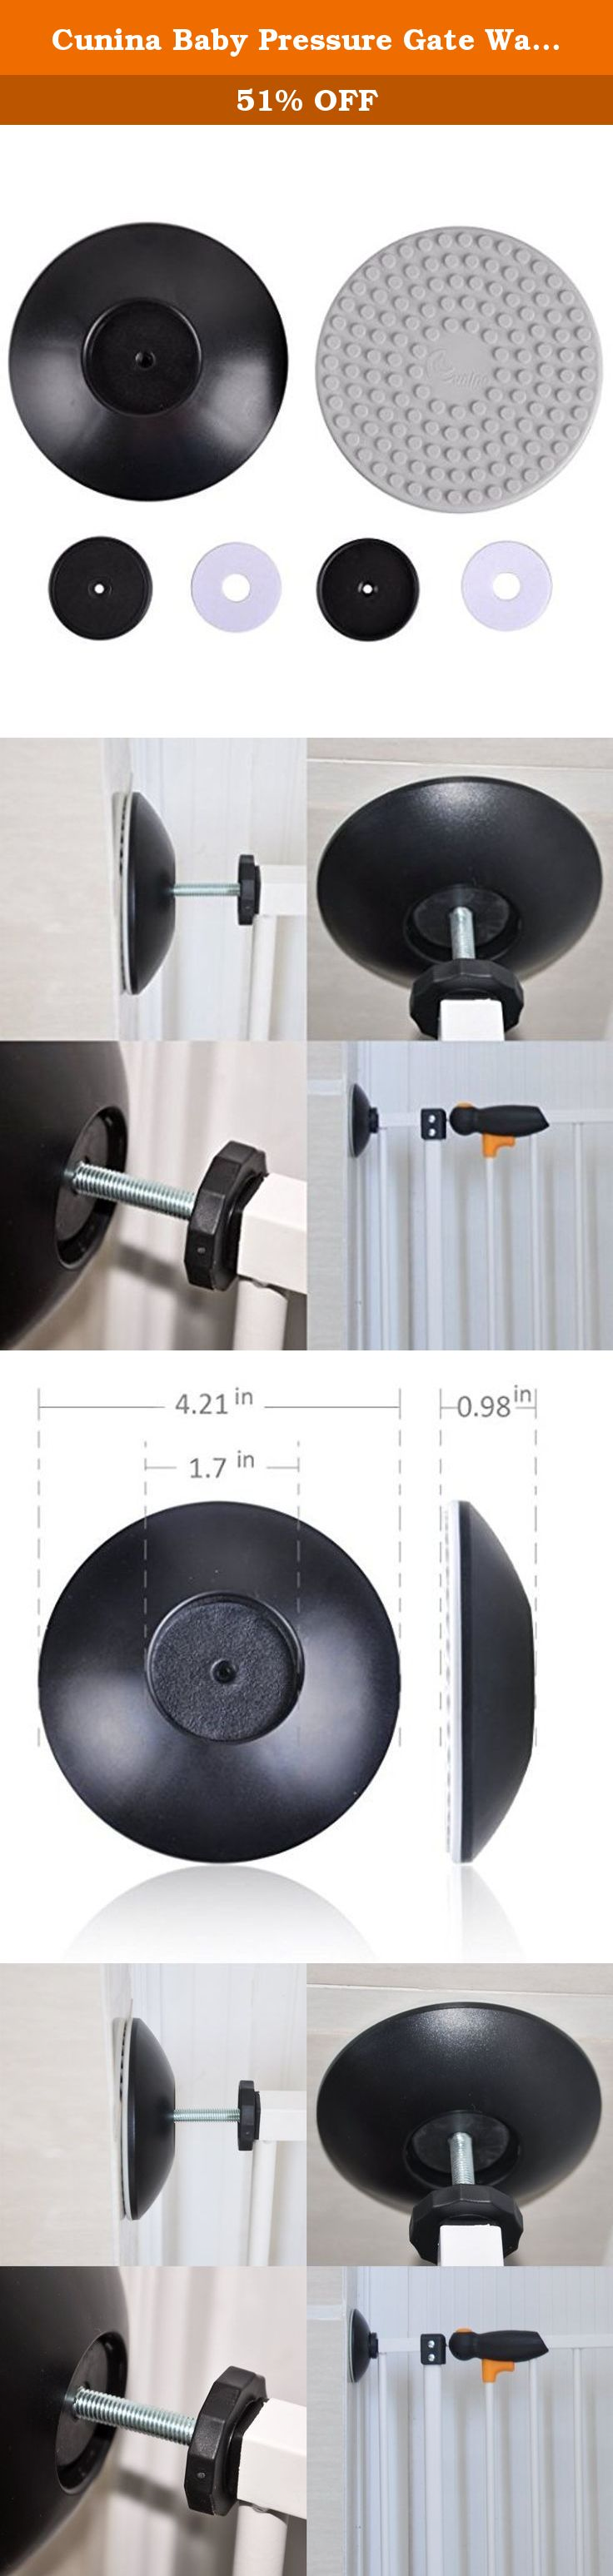 Cunina Baby Pressure Gate Wall Protector Guard Protect Door Stair Wall  Surface Also For Shower Curtain